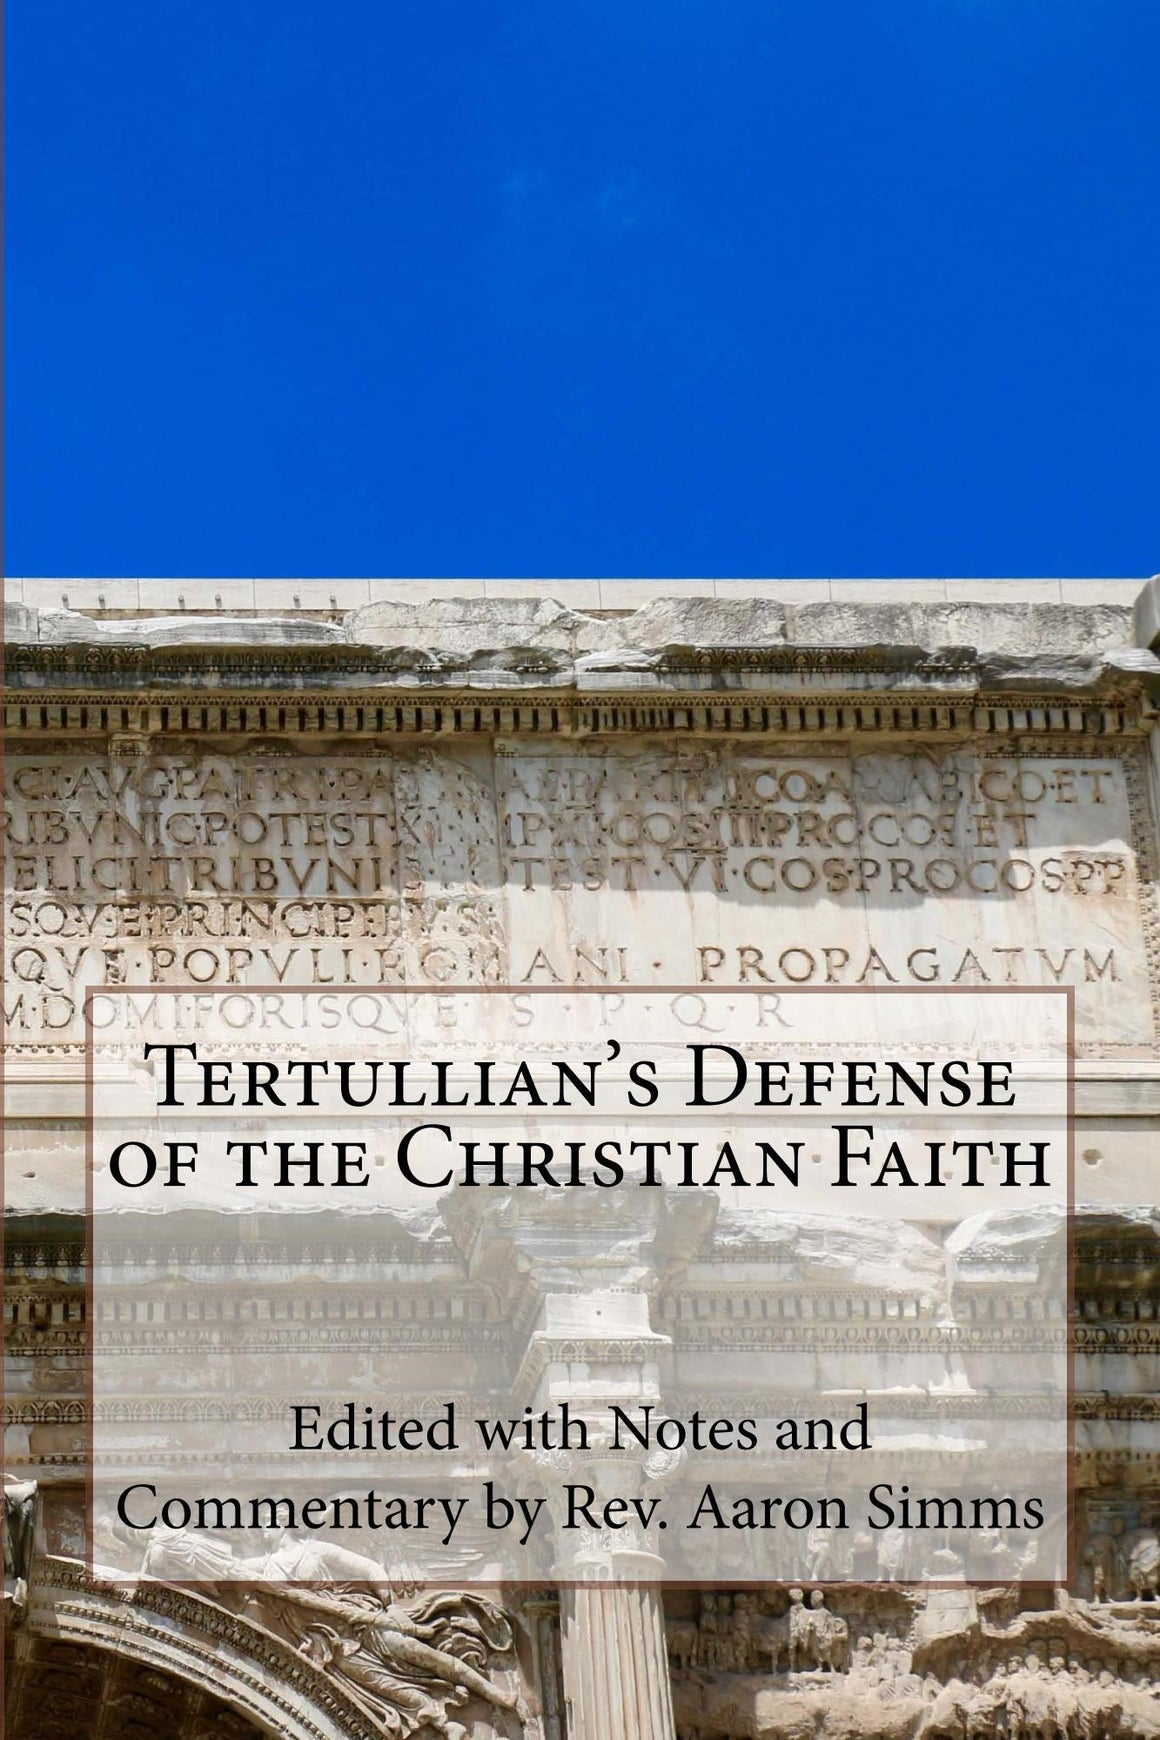 Tertullian's Defense of the Christian Faith: With Notes and Commentary by Rev. Aaron Simms